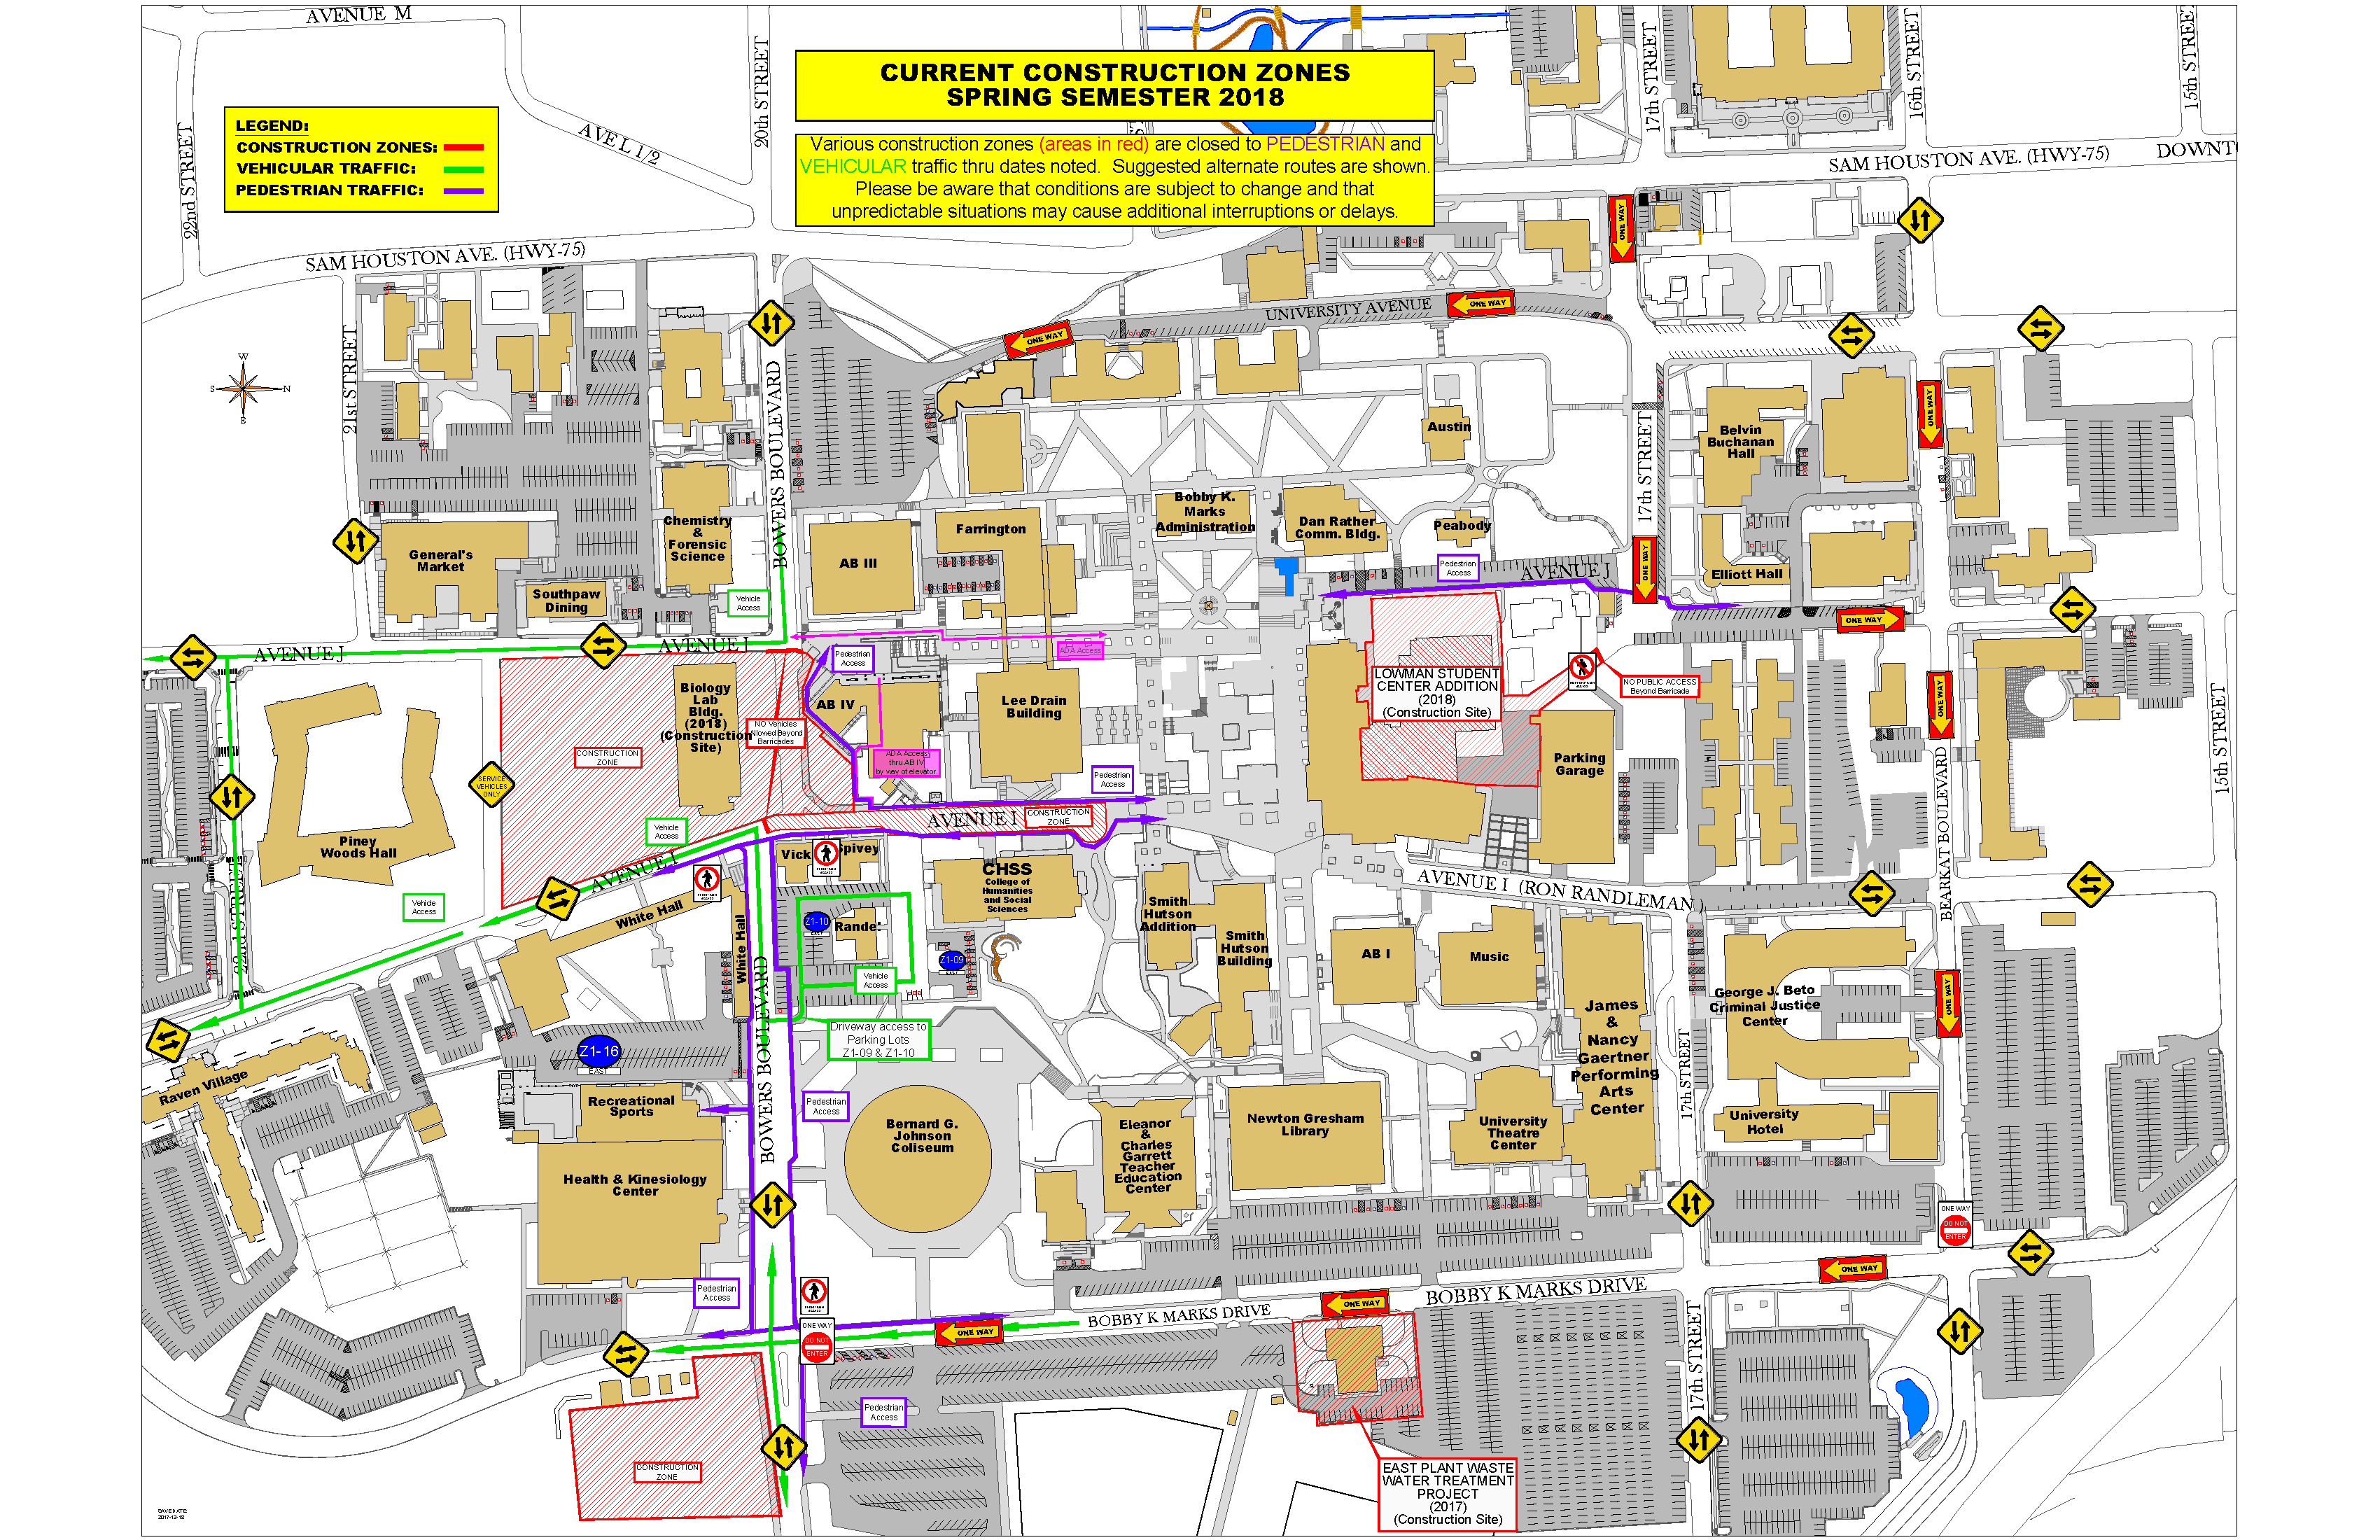 sam houston state university campus map Master Campus Map 135 Huntsville Tx Induced Info sam houston state university campus map